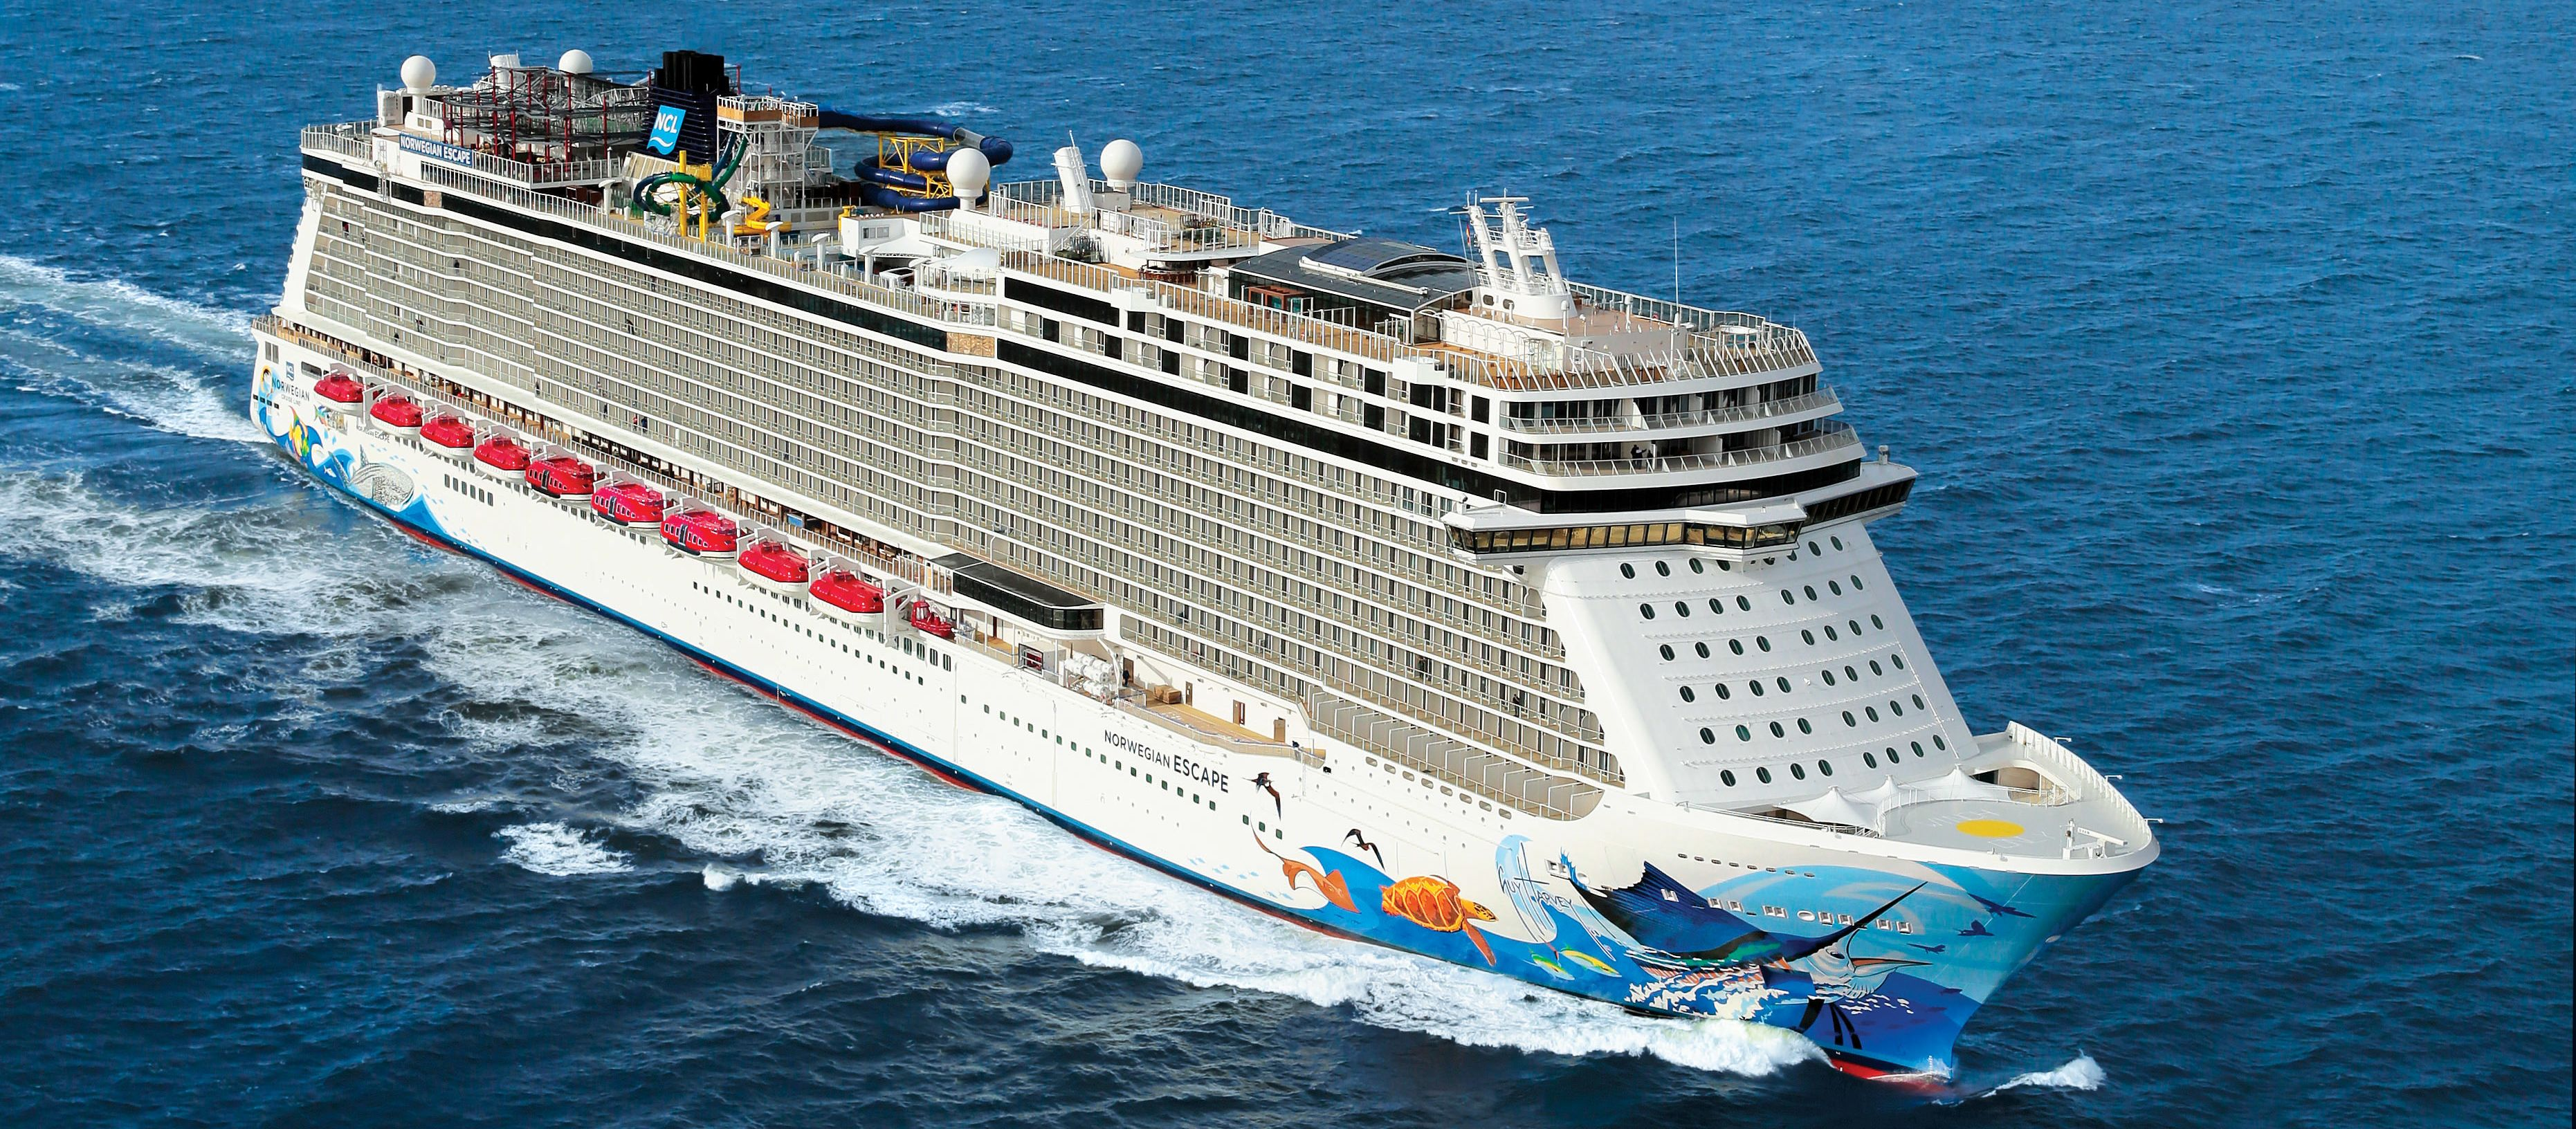 Norwegian Escape during Sea Trials along the coast of Norway